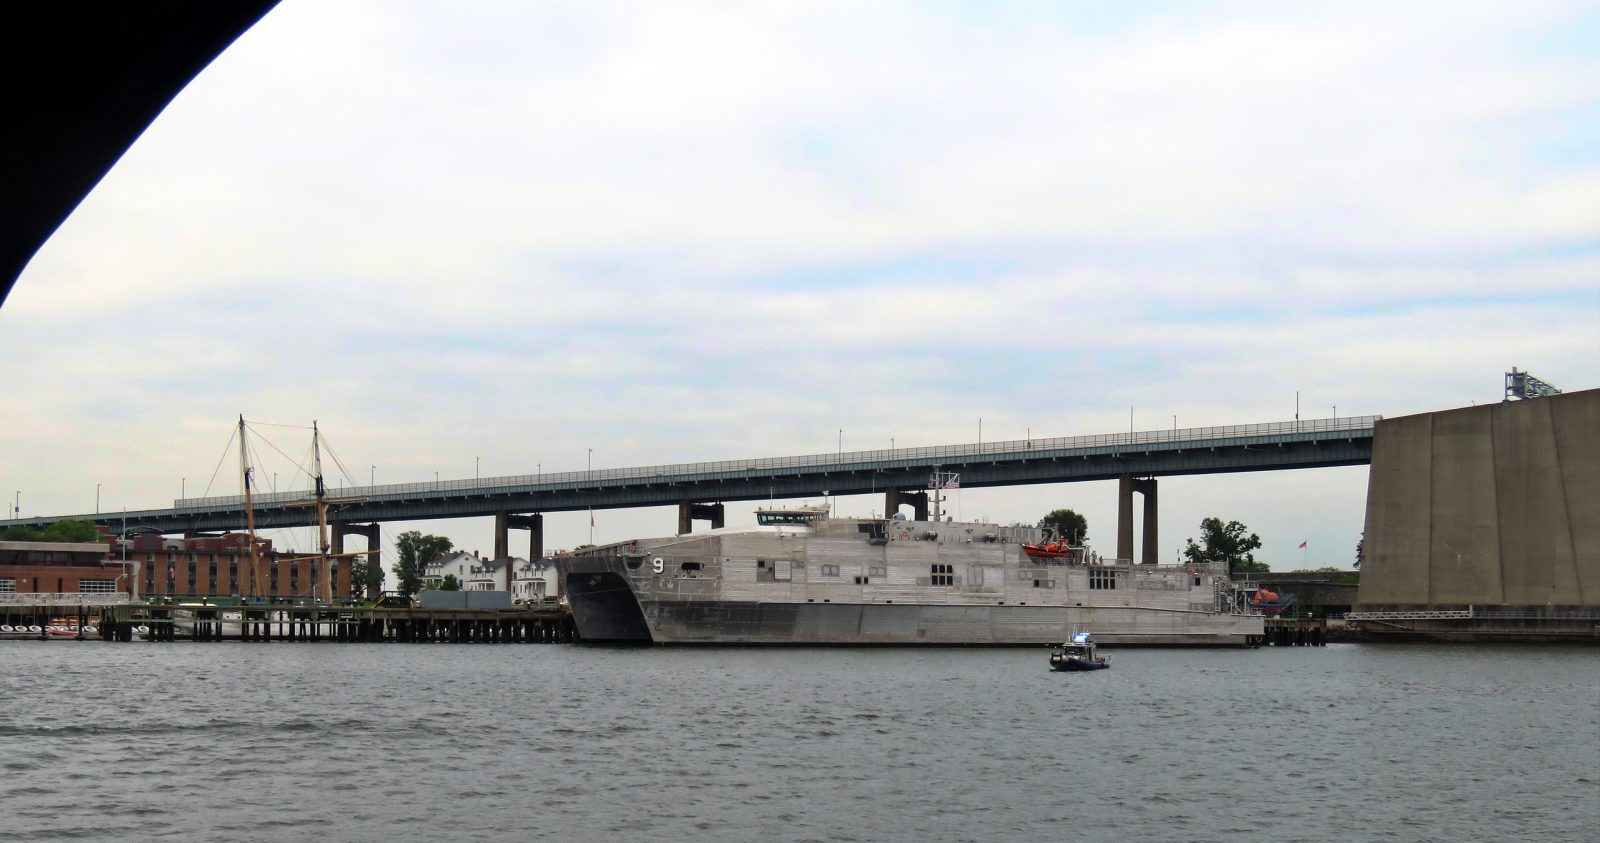 Guarded Navy vessel at SUNY Maritime, Throgs Neck, 5-29-2018